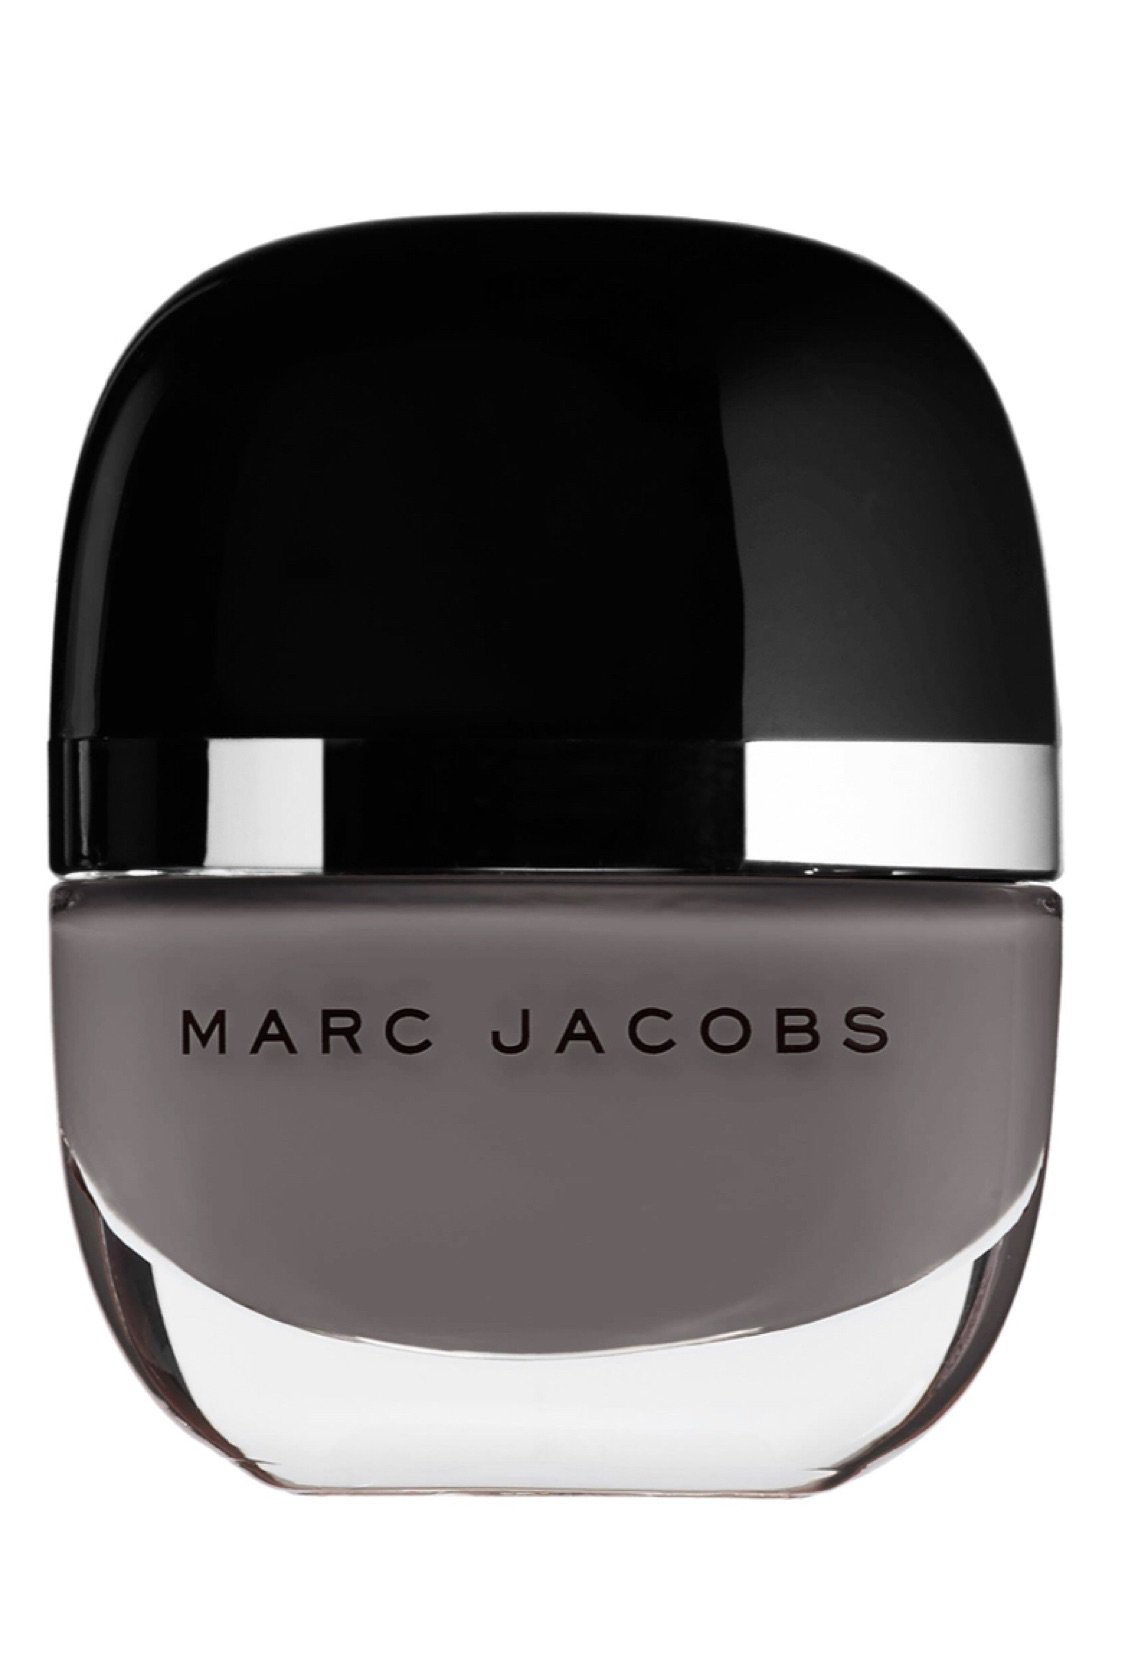 Marc Jacobs Nail Polish Slate Gray